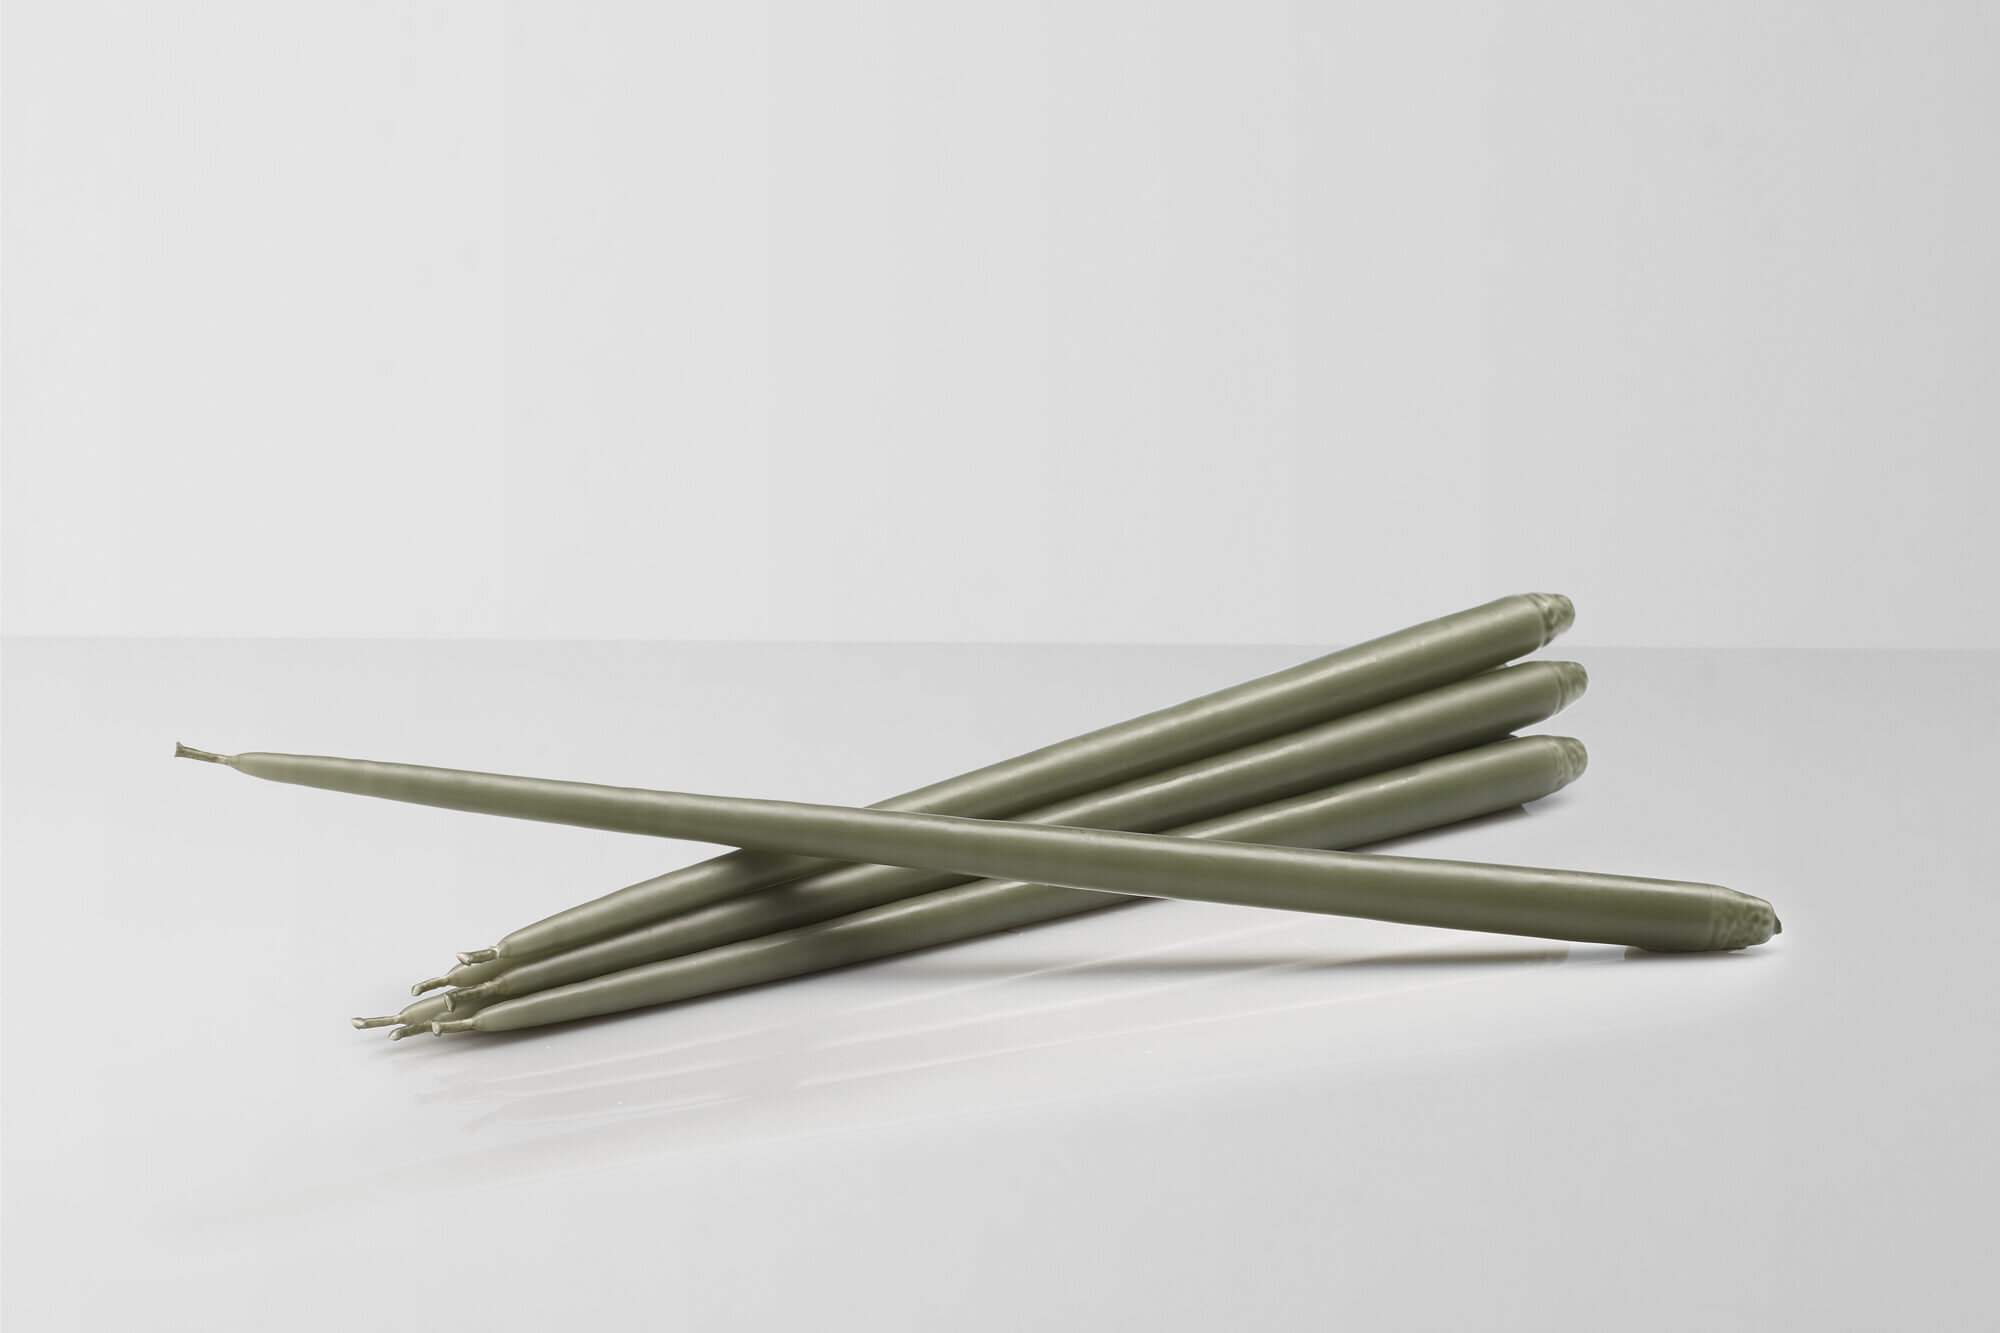 Brand new long tapered candles by Danish brand Ester&Erik are available in a range of 5 colours